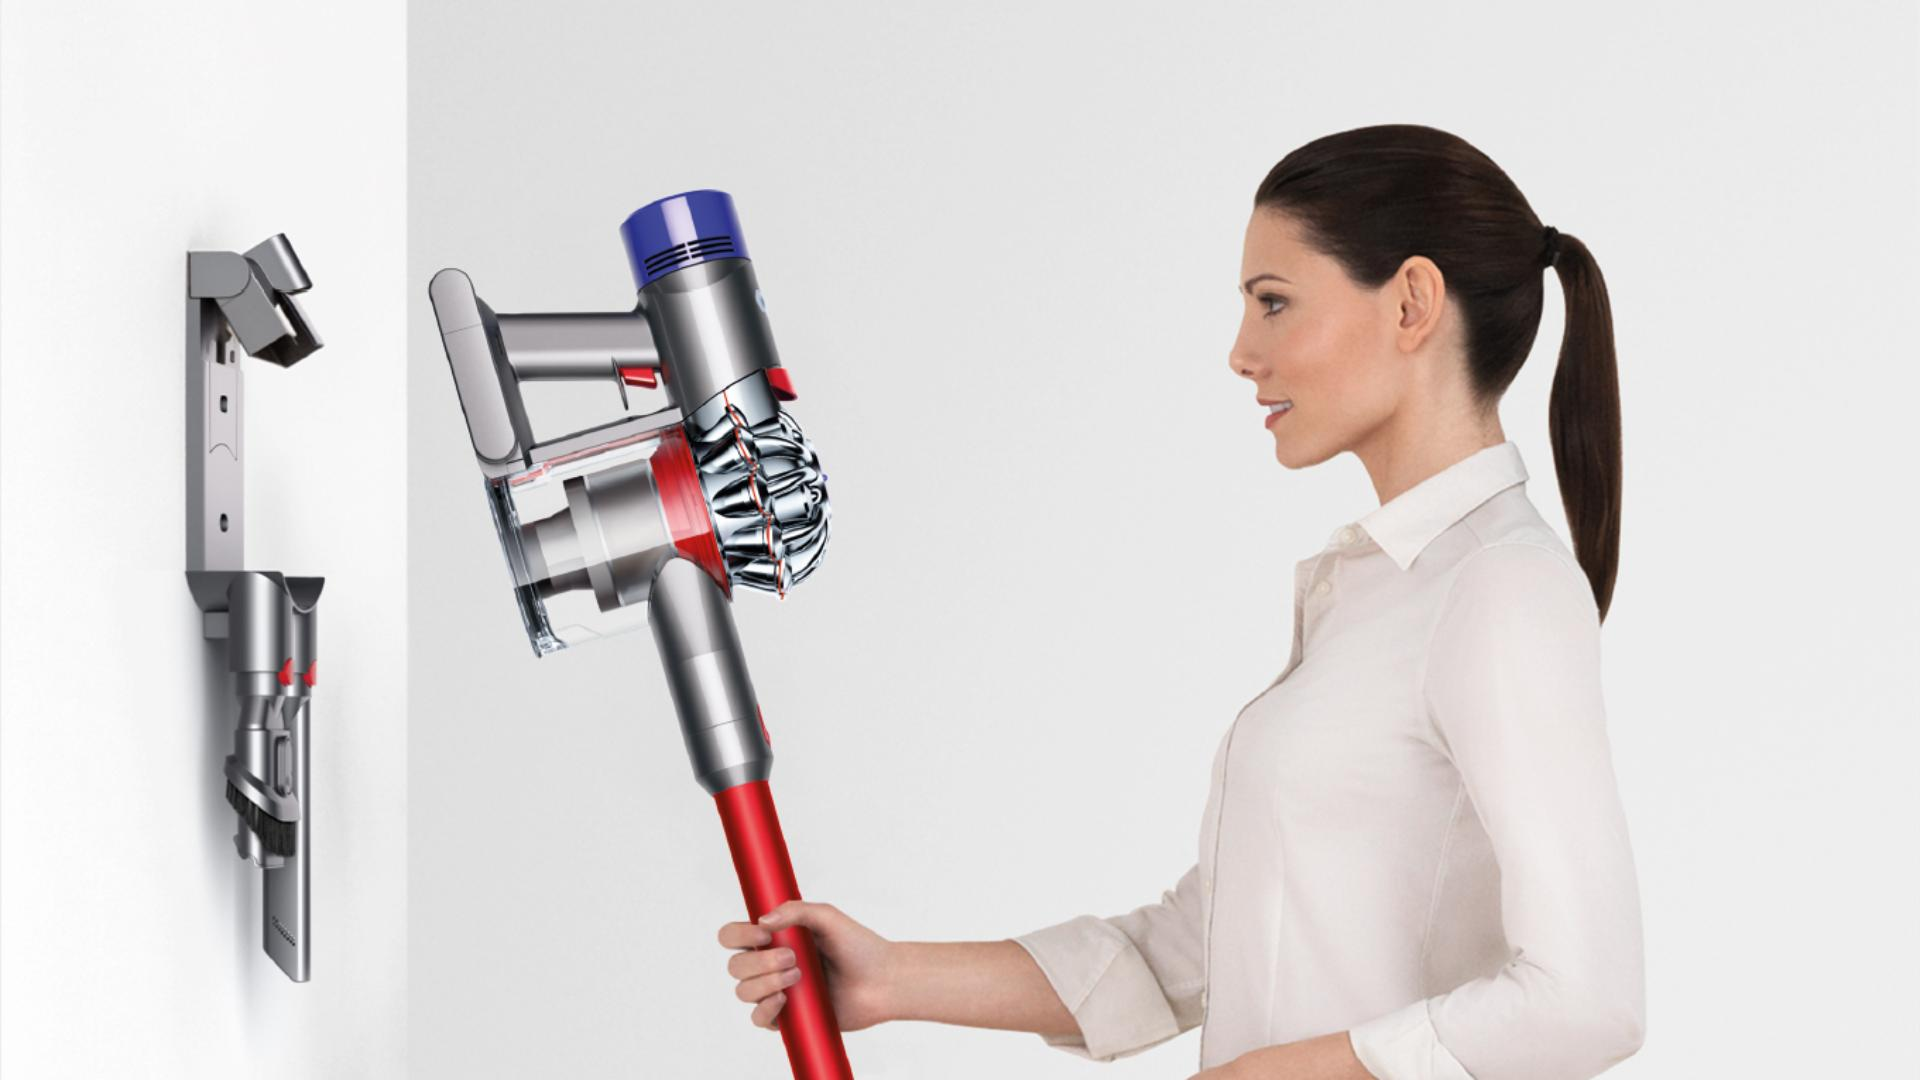 Woman placing Dyson V7 vacuum back ino storage dock